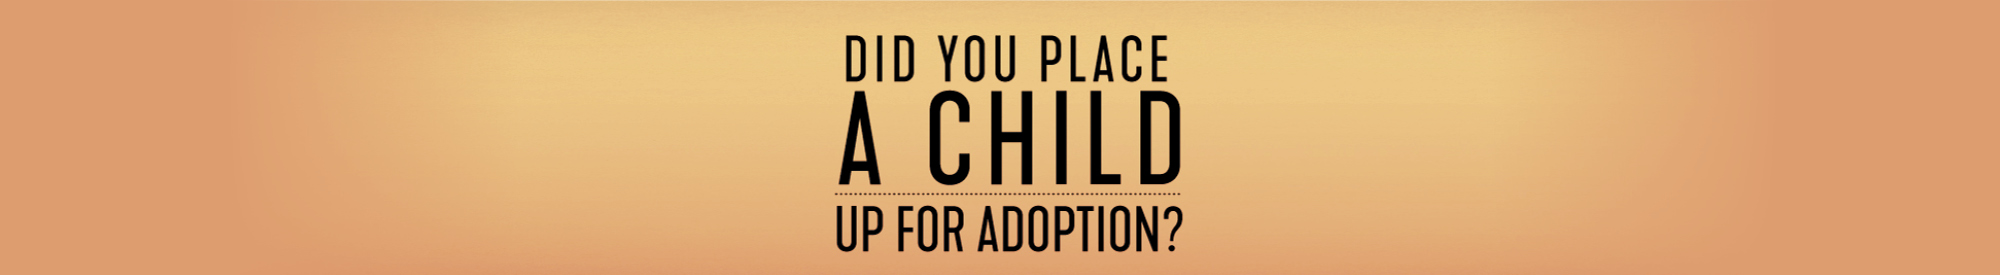 Did you place a child up for adoption?